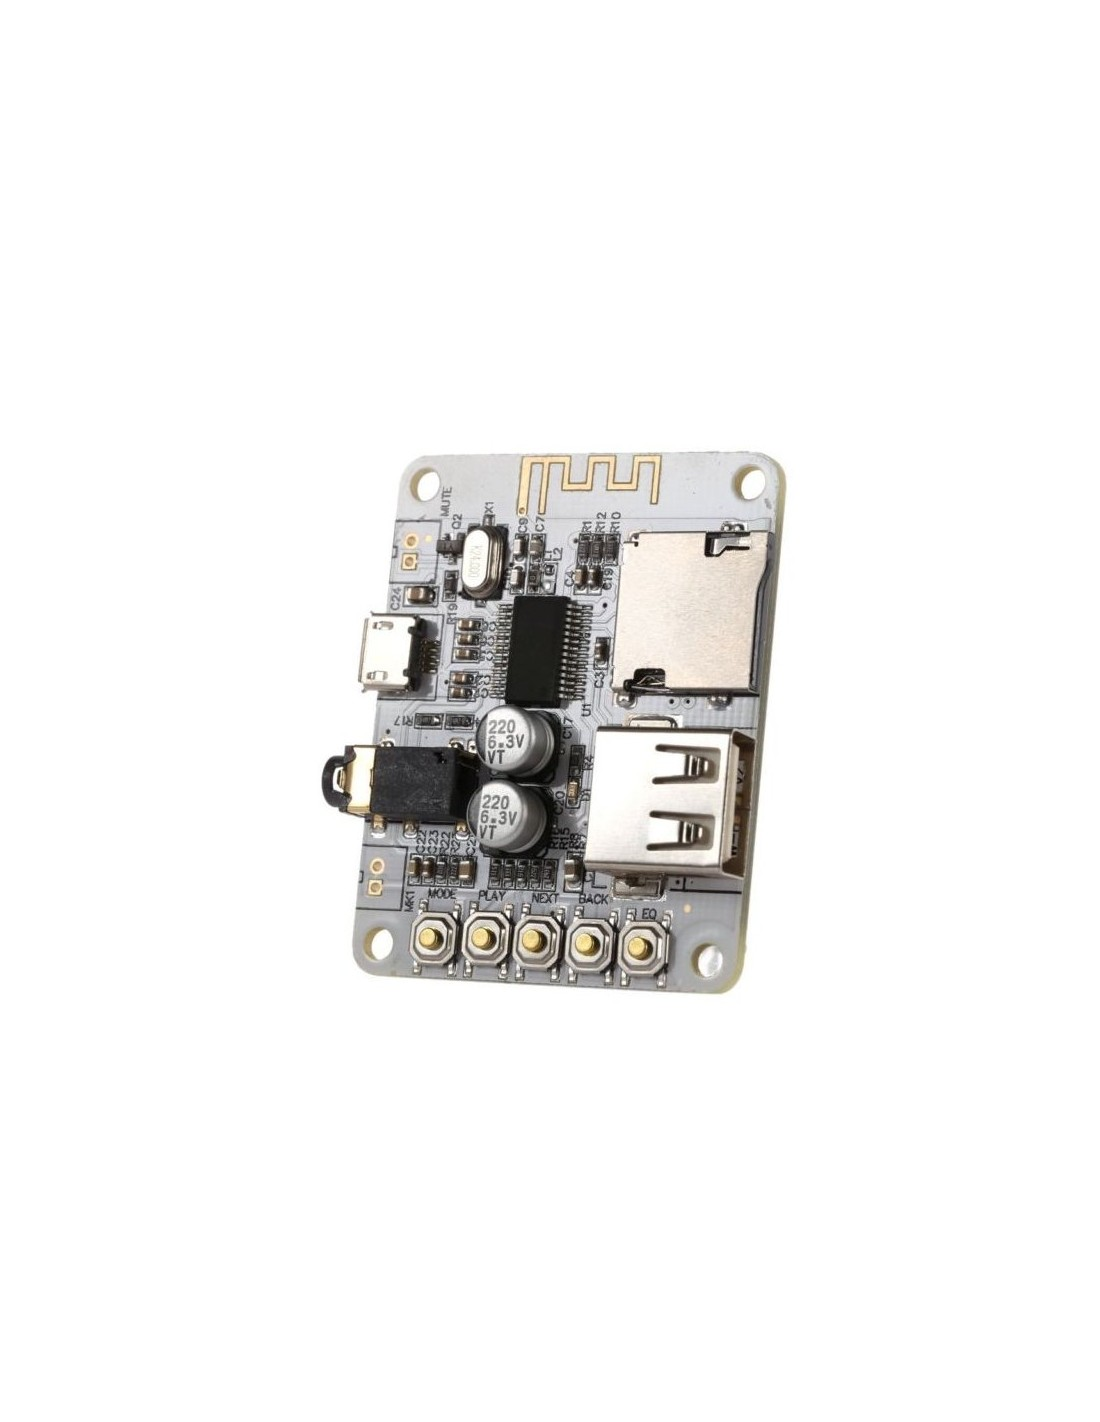 Bluetooth Audio Receiver Wireless Usb Micro Sd Module Amplifier How To Use Wtv020sd Music With Arduino Build Circuit 41 Board